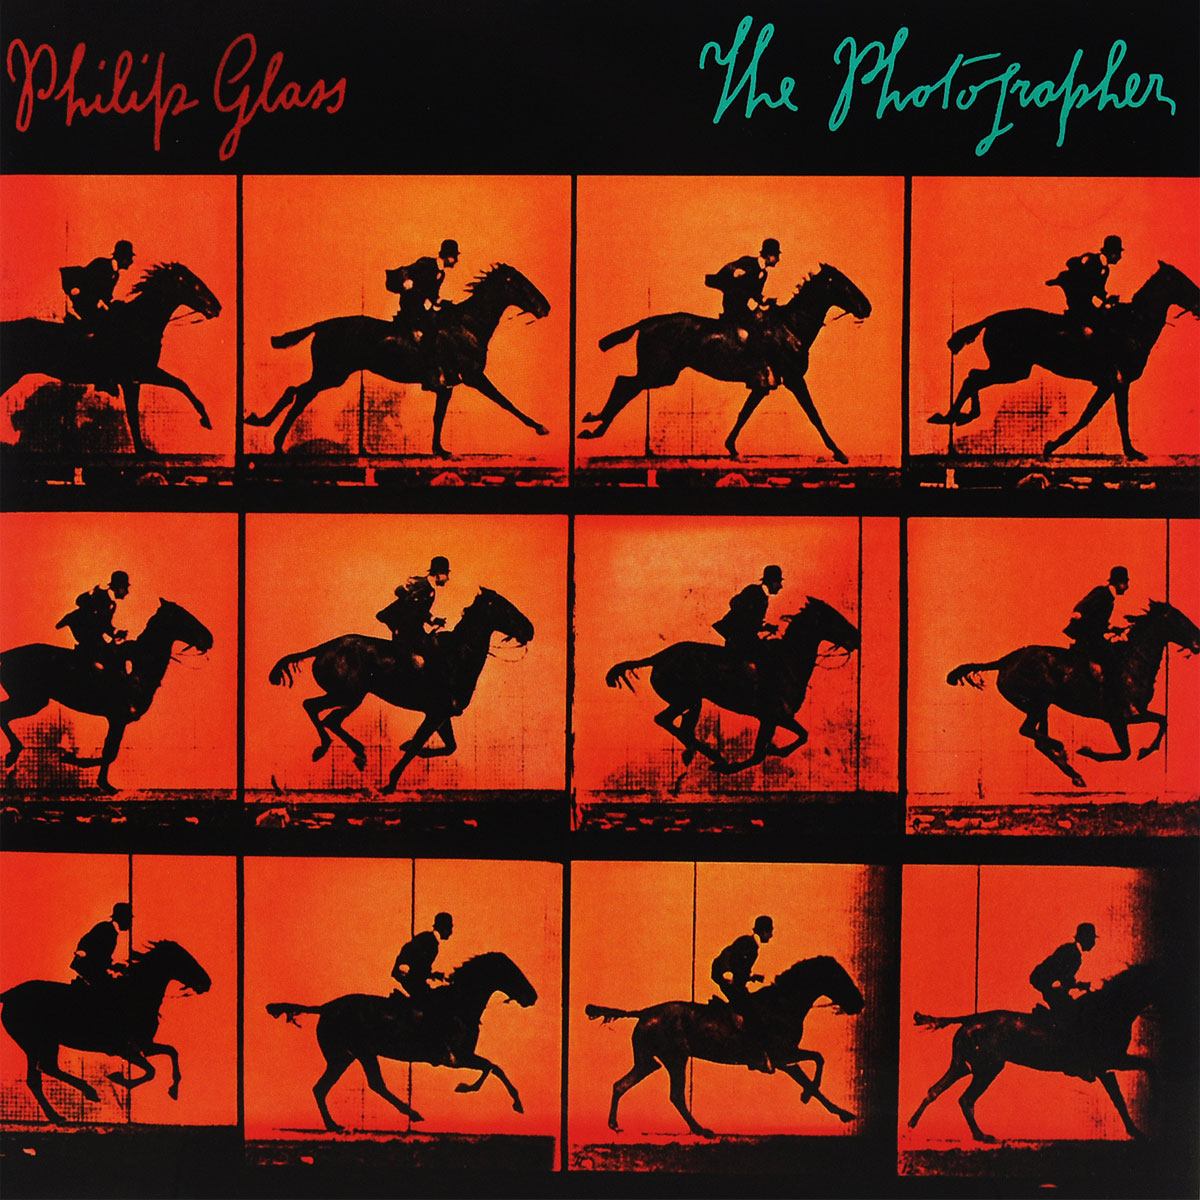 лучшая цена Philip Glass. The Photographer (LP)